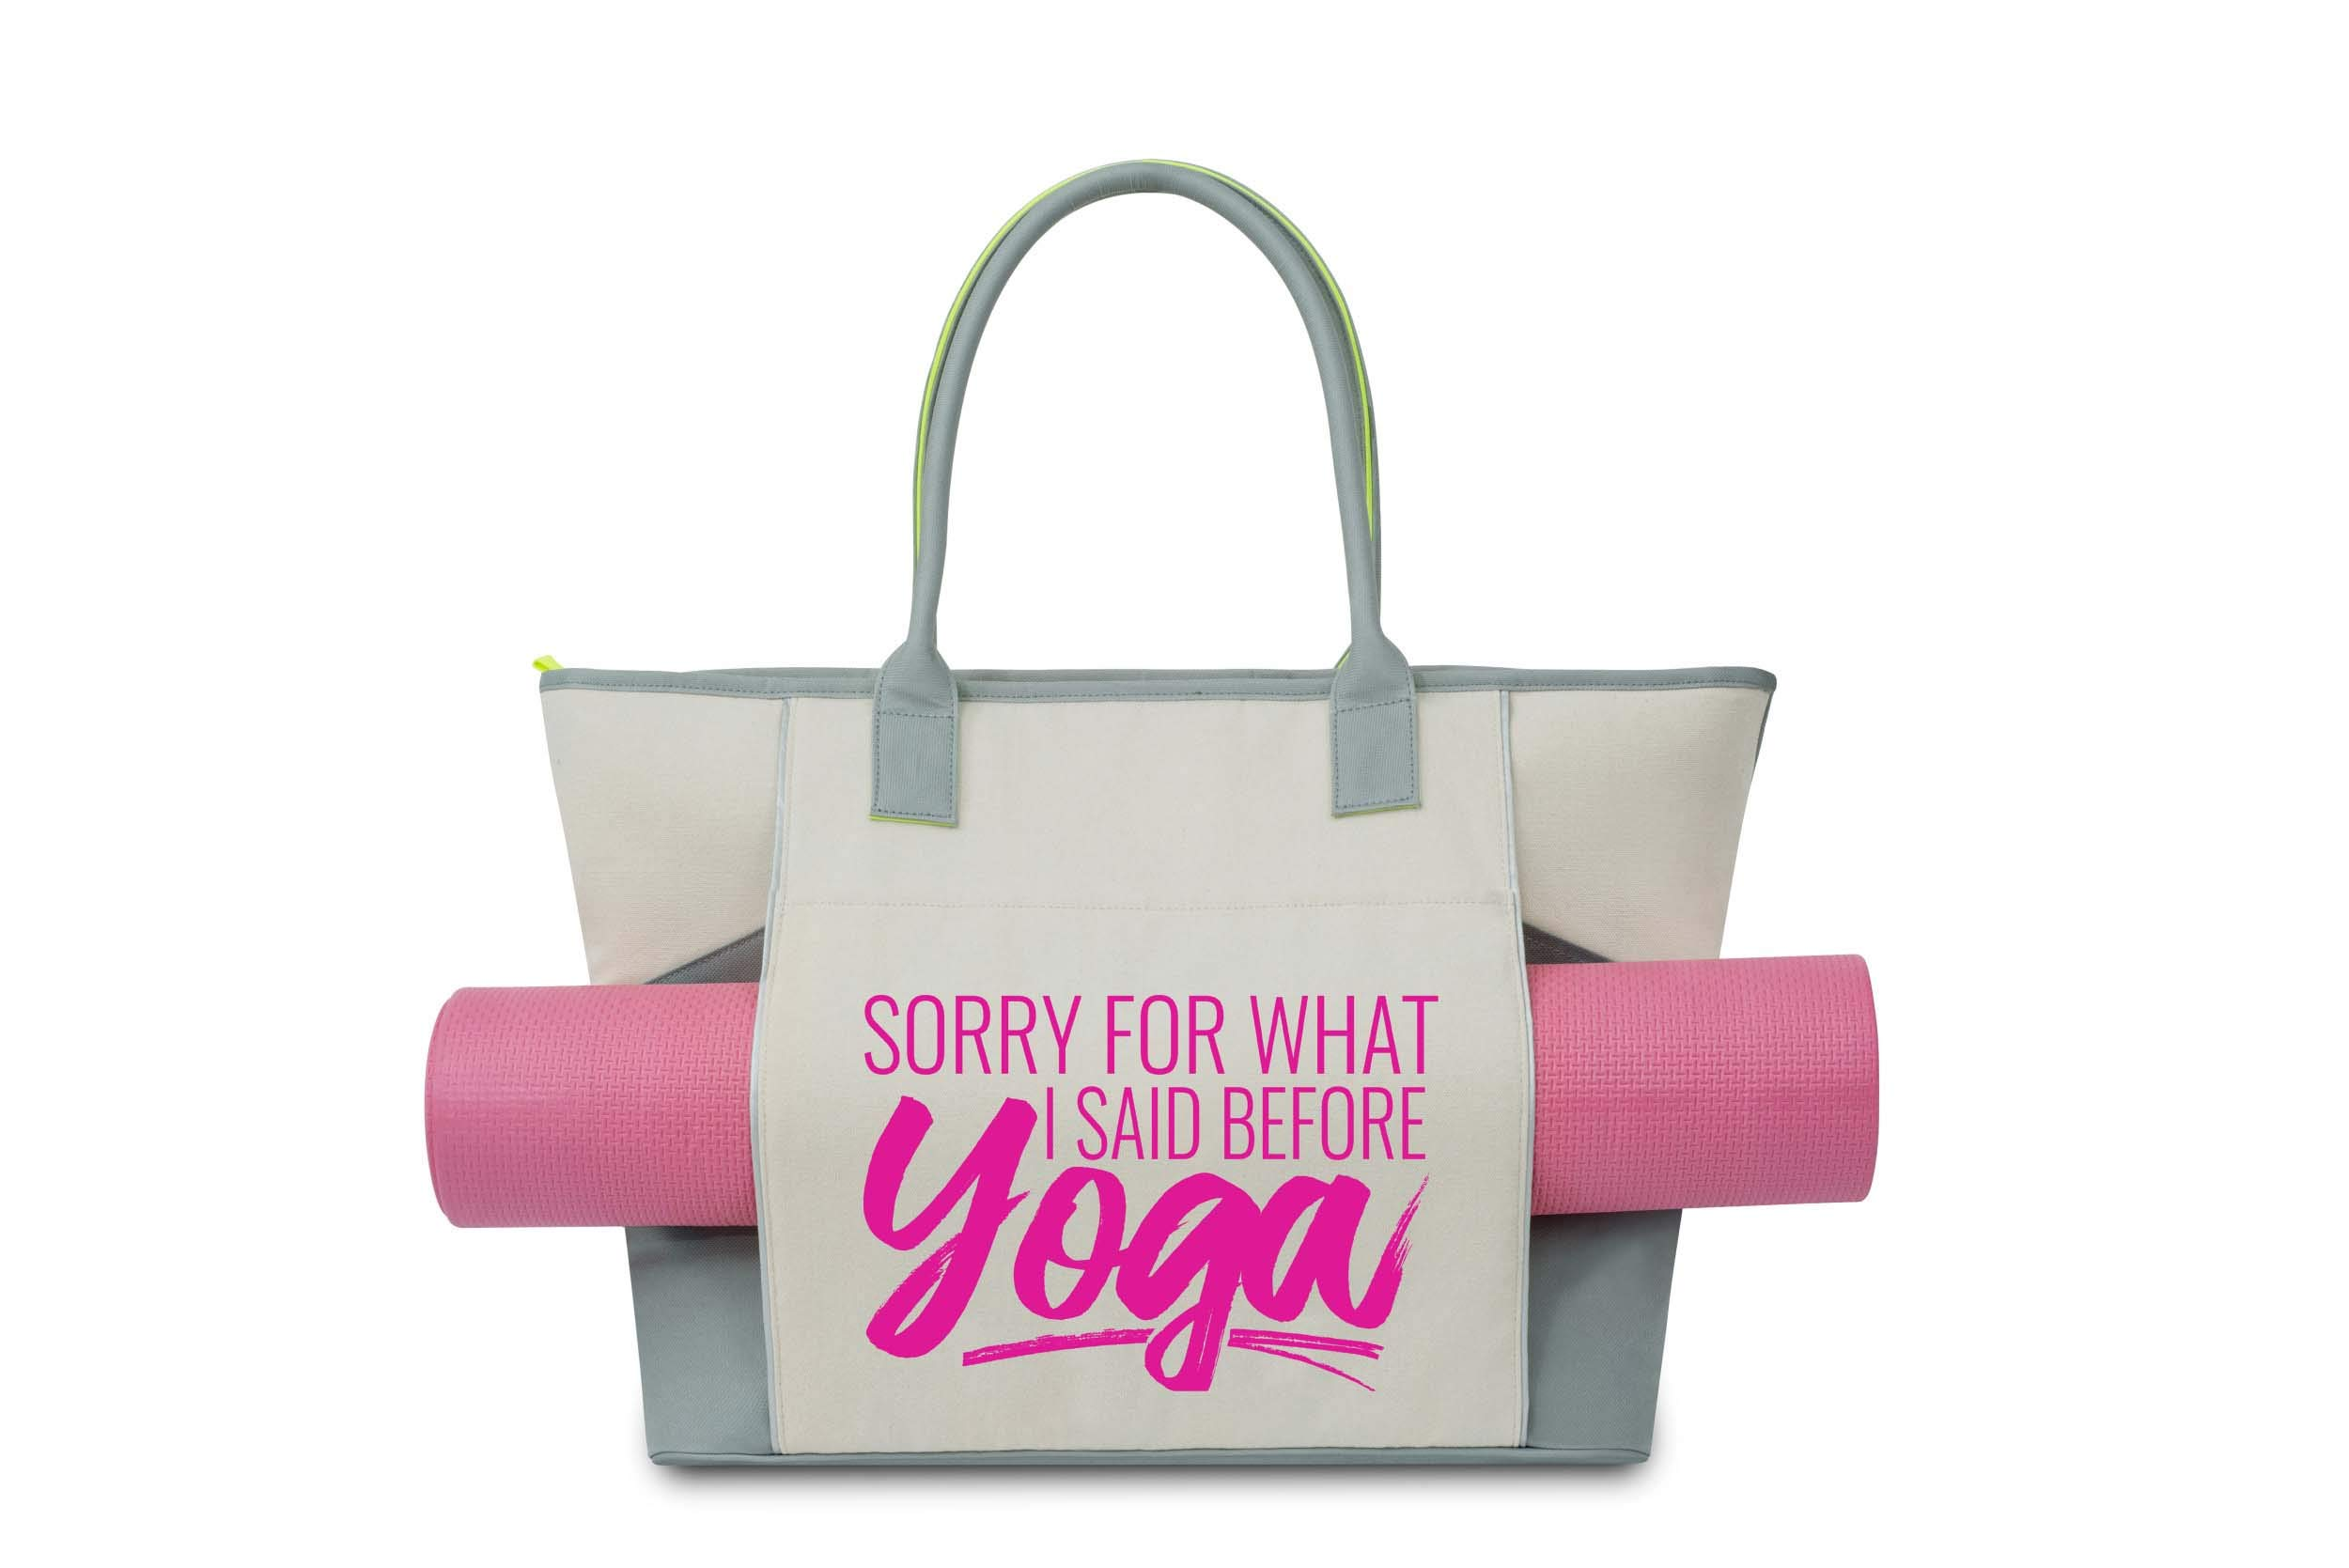 Cute Yoga Tote Bag - Sorry For What I Said Before Yoga Canvas Gray Tote - Includes Front Pocket for Carrying Mat, Side Water Bottle Pocket and Zippered Pockets - Perfect Gift for Yoga Lovers